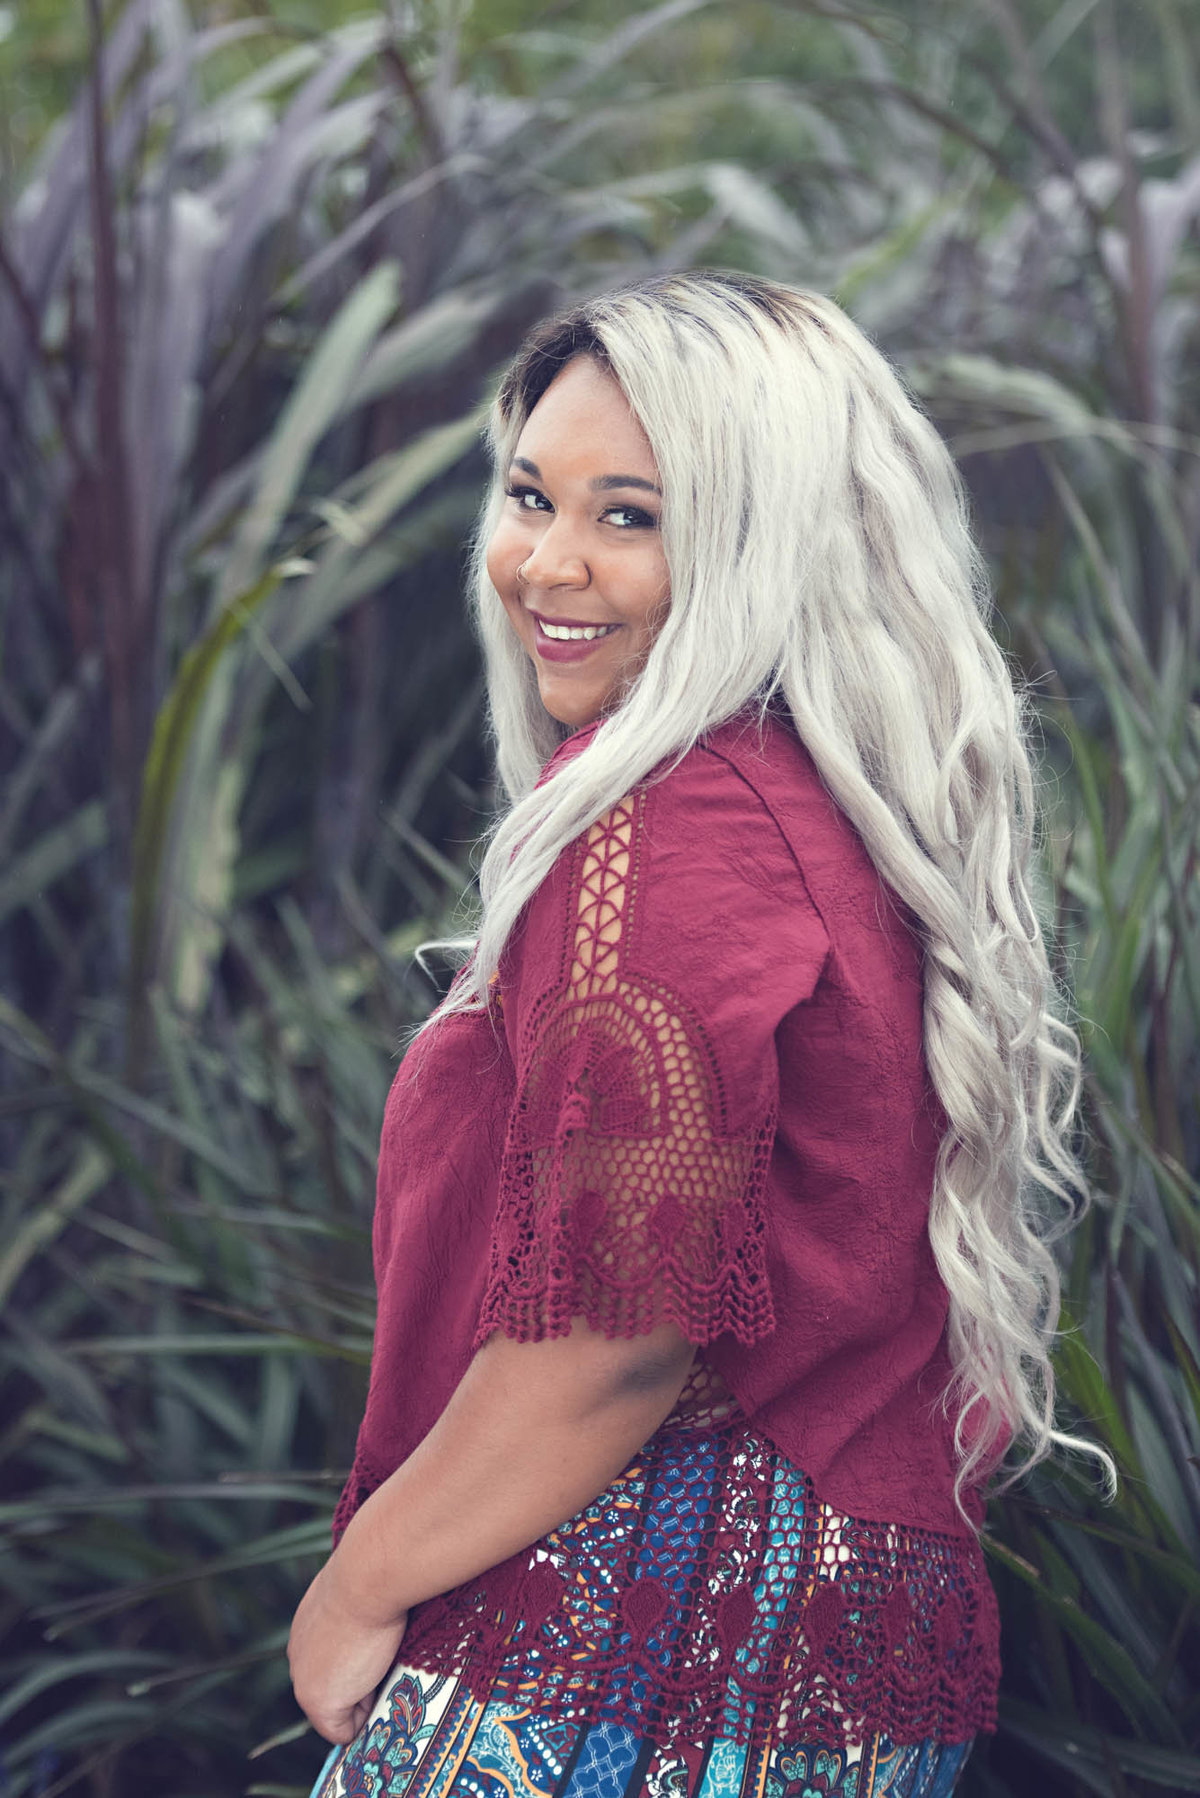 Senior girl of color gorgeous white hair smling photographer